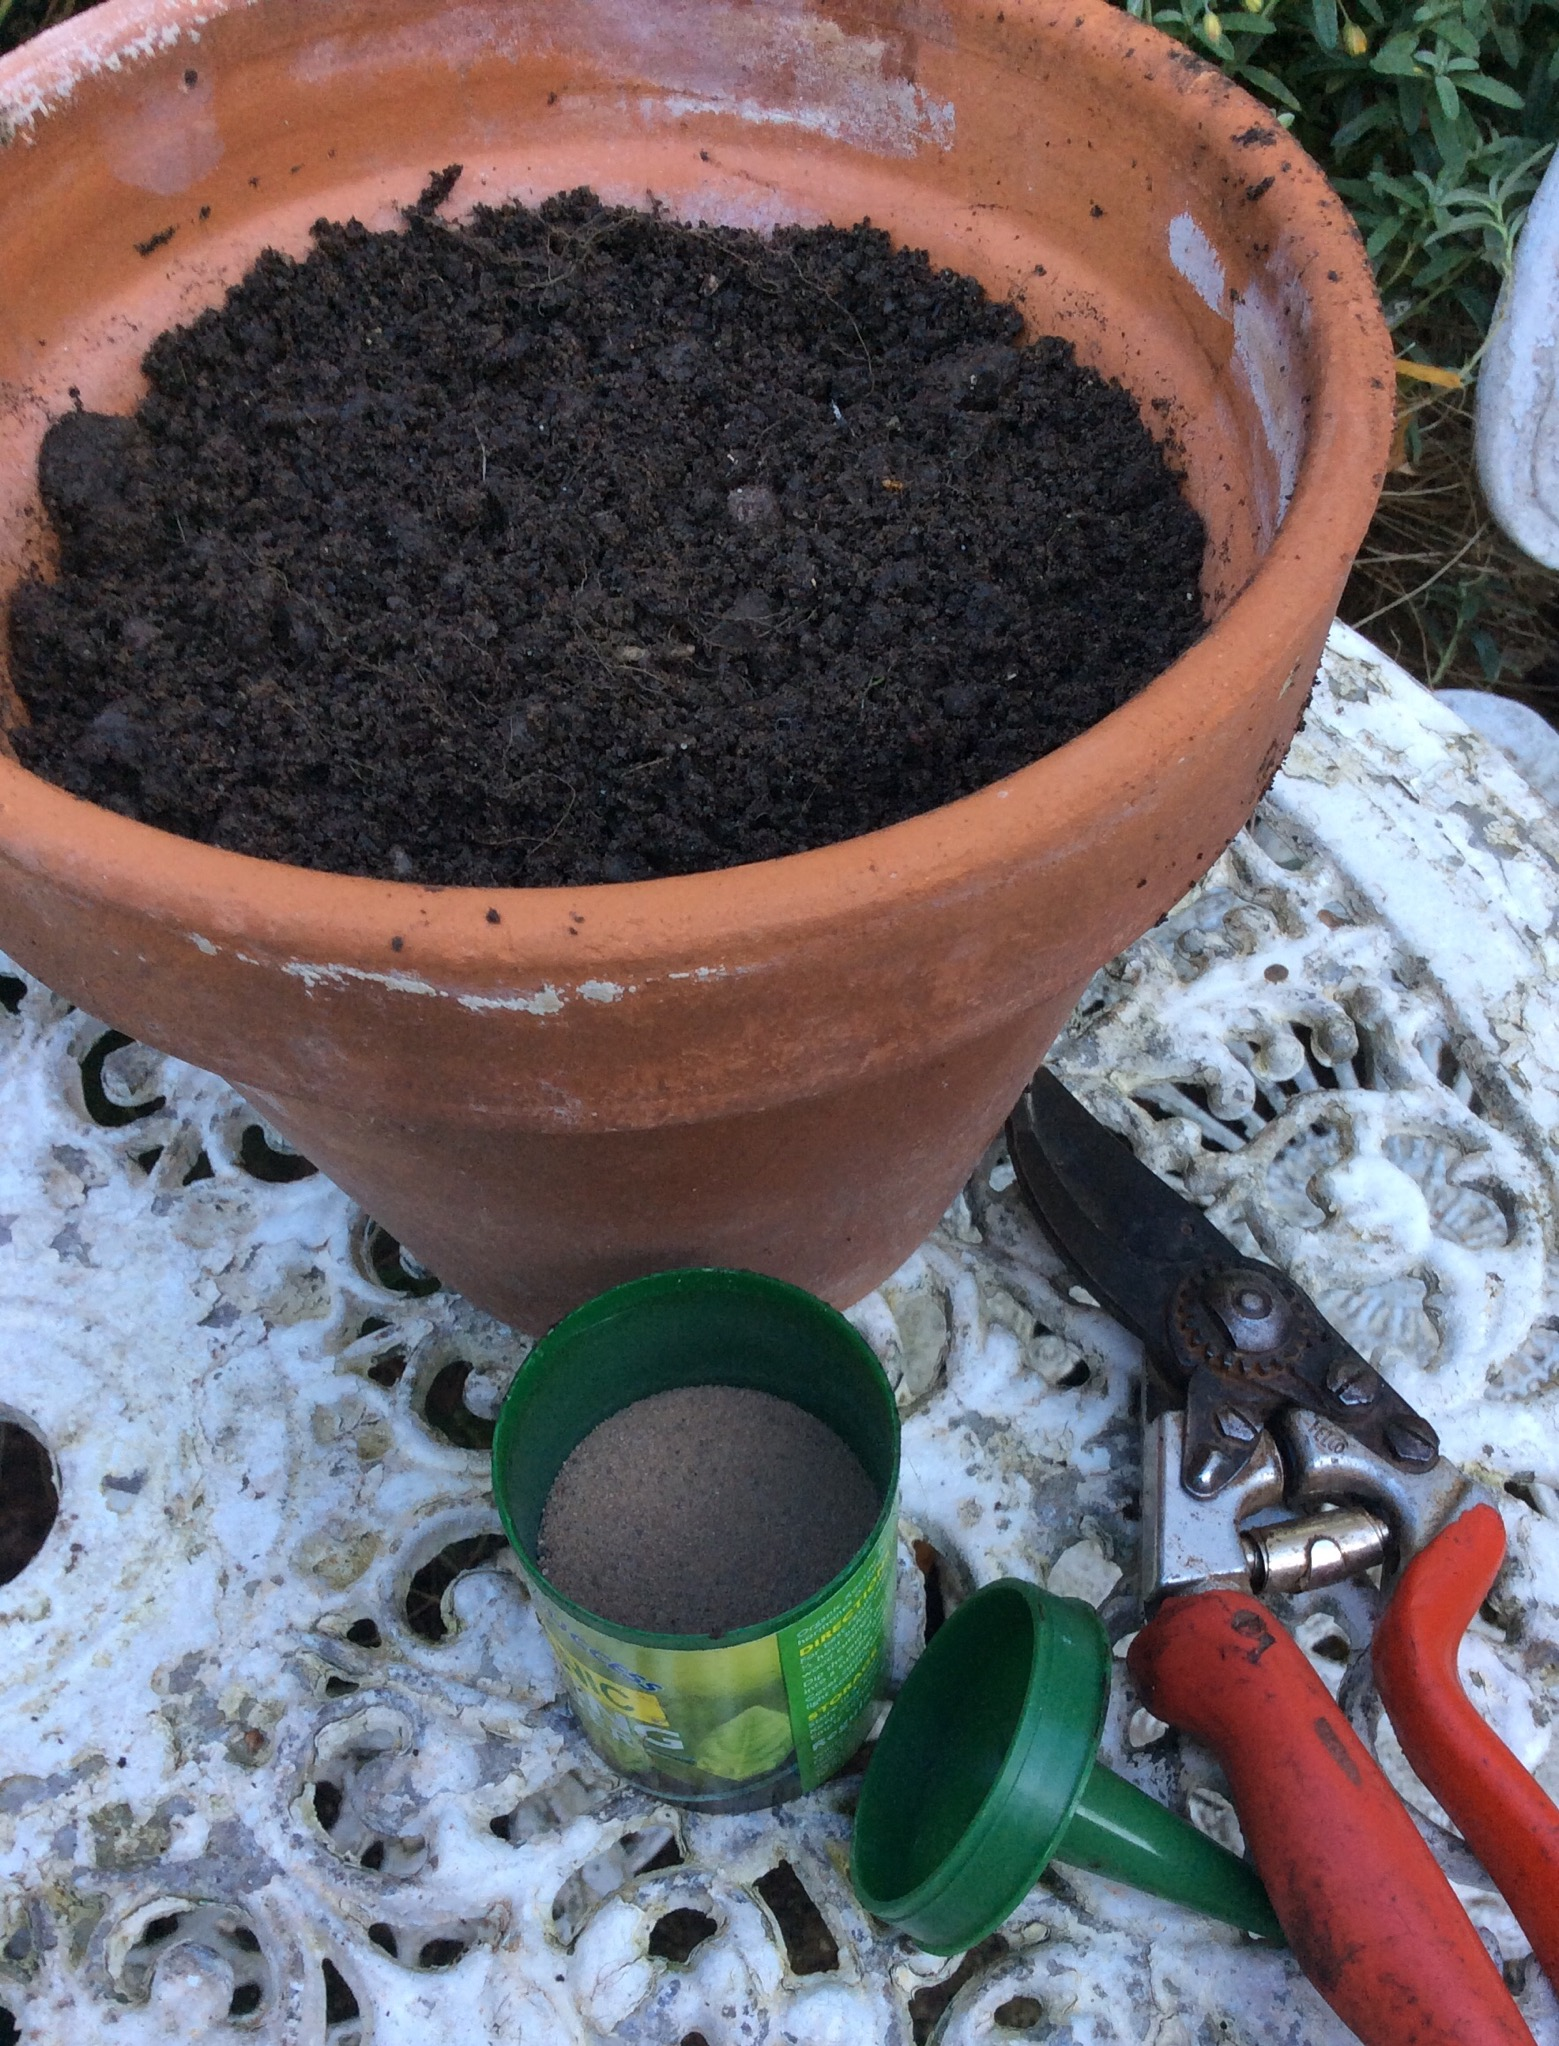 Hardwood Cuttings Technique. Pot of compost, secateurs and rooting powder, hardwood cuttings technique